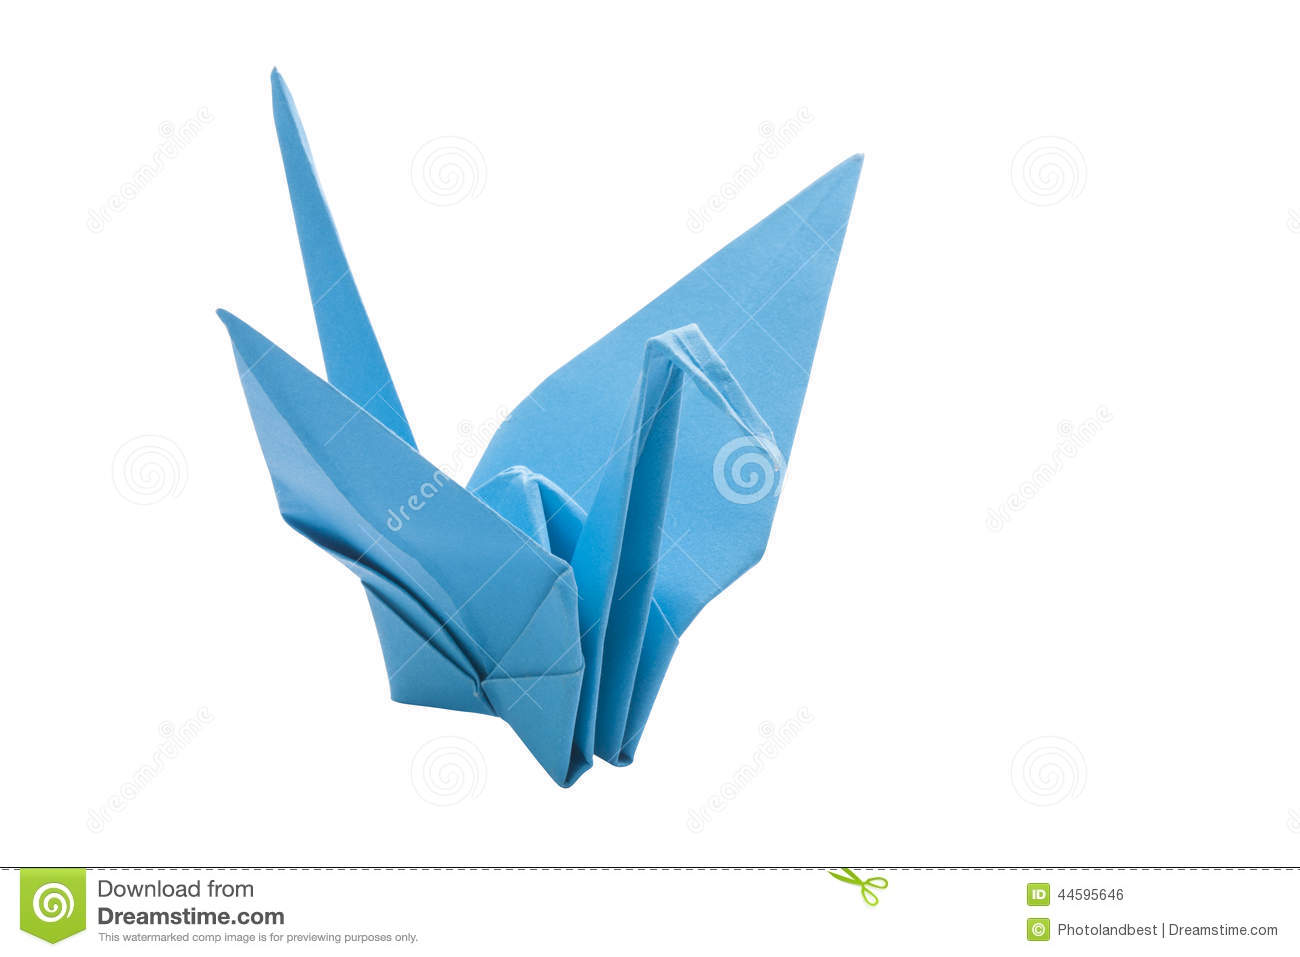 Origami blue bird paper stock photo image of game graphic 44595646 origami blue bird paper game graphic jeuxipadfo Images